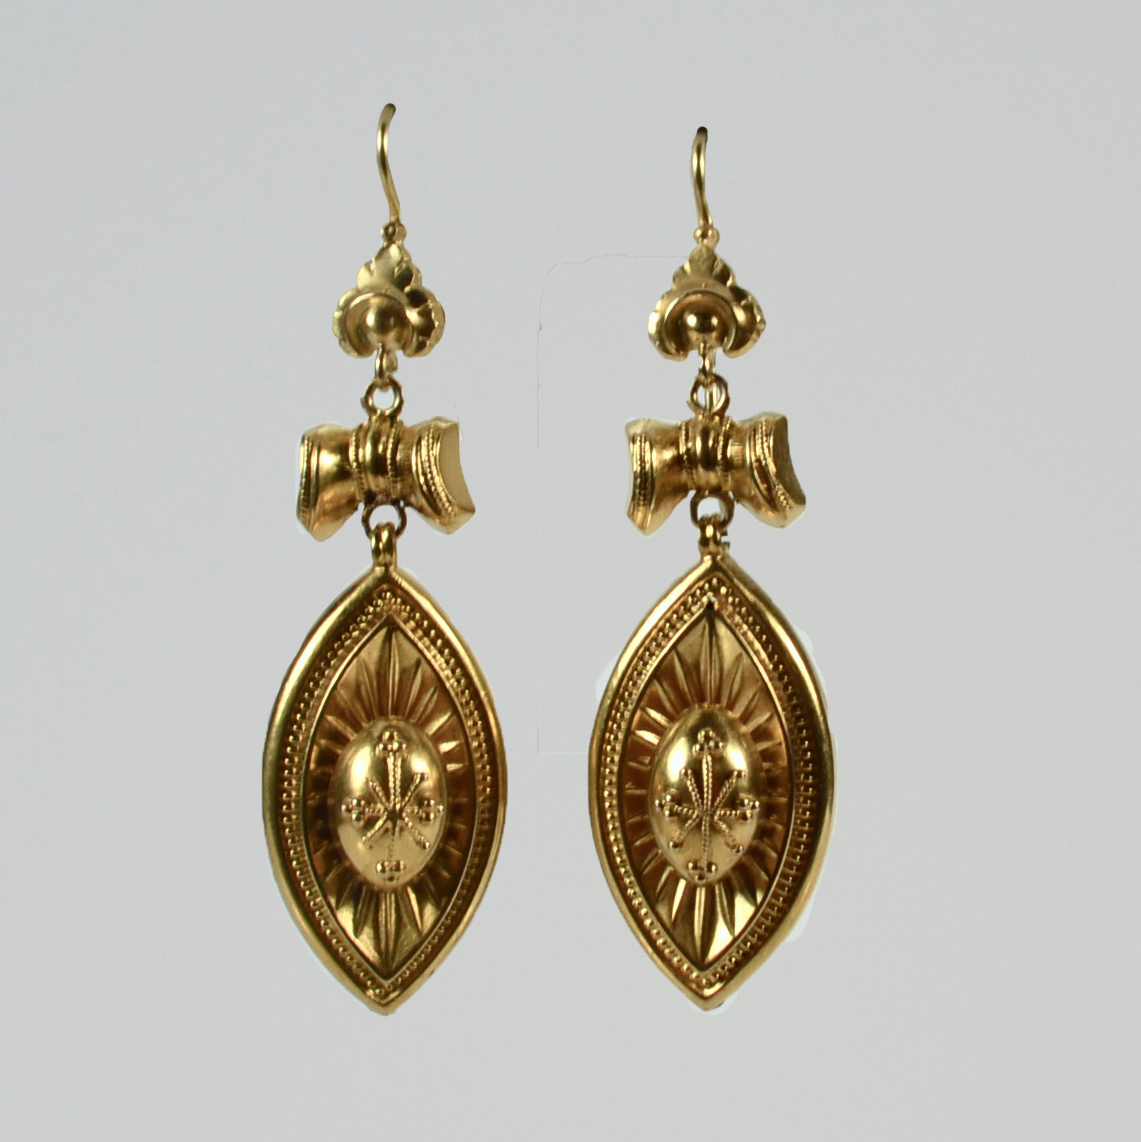 Antique 15 Carat Gold Etruscan Revival Earrings